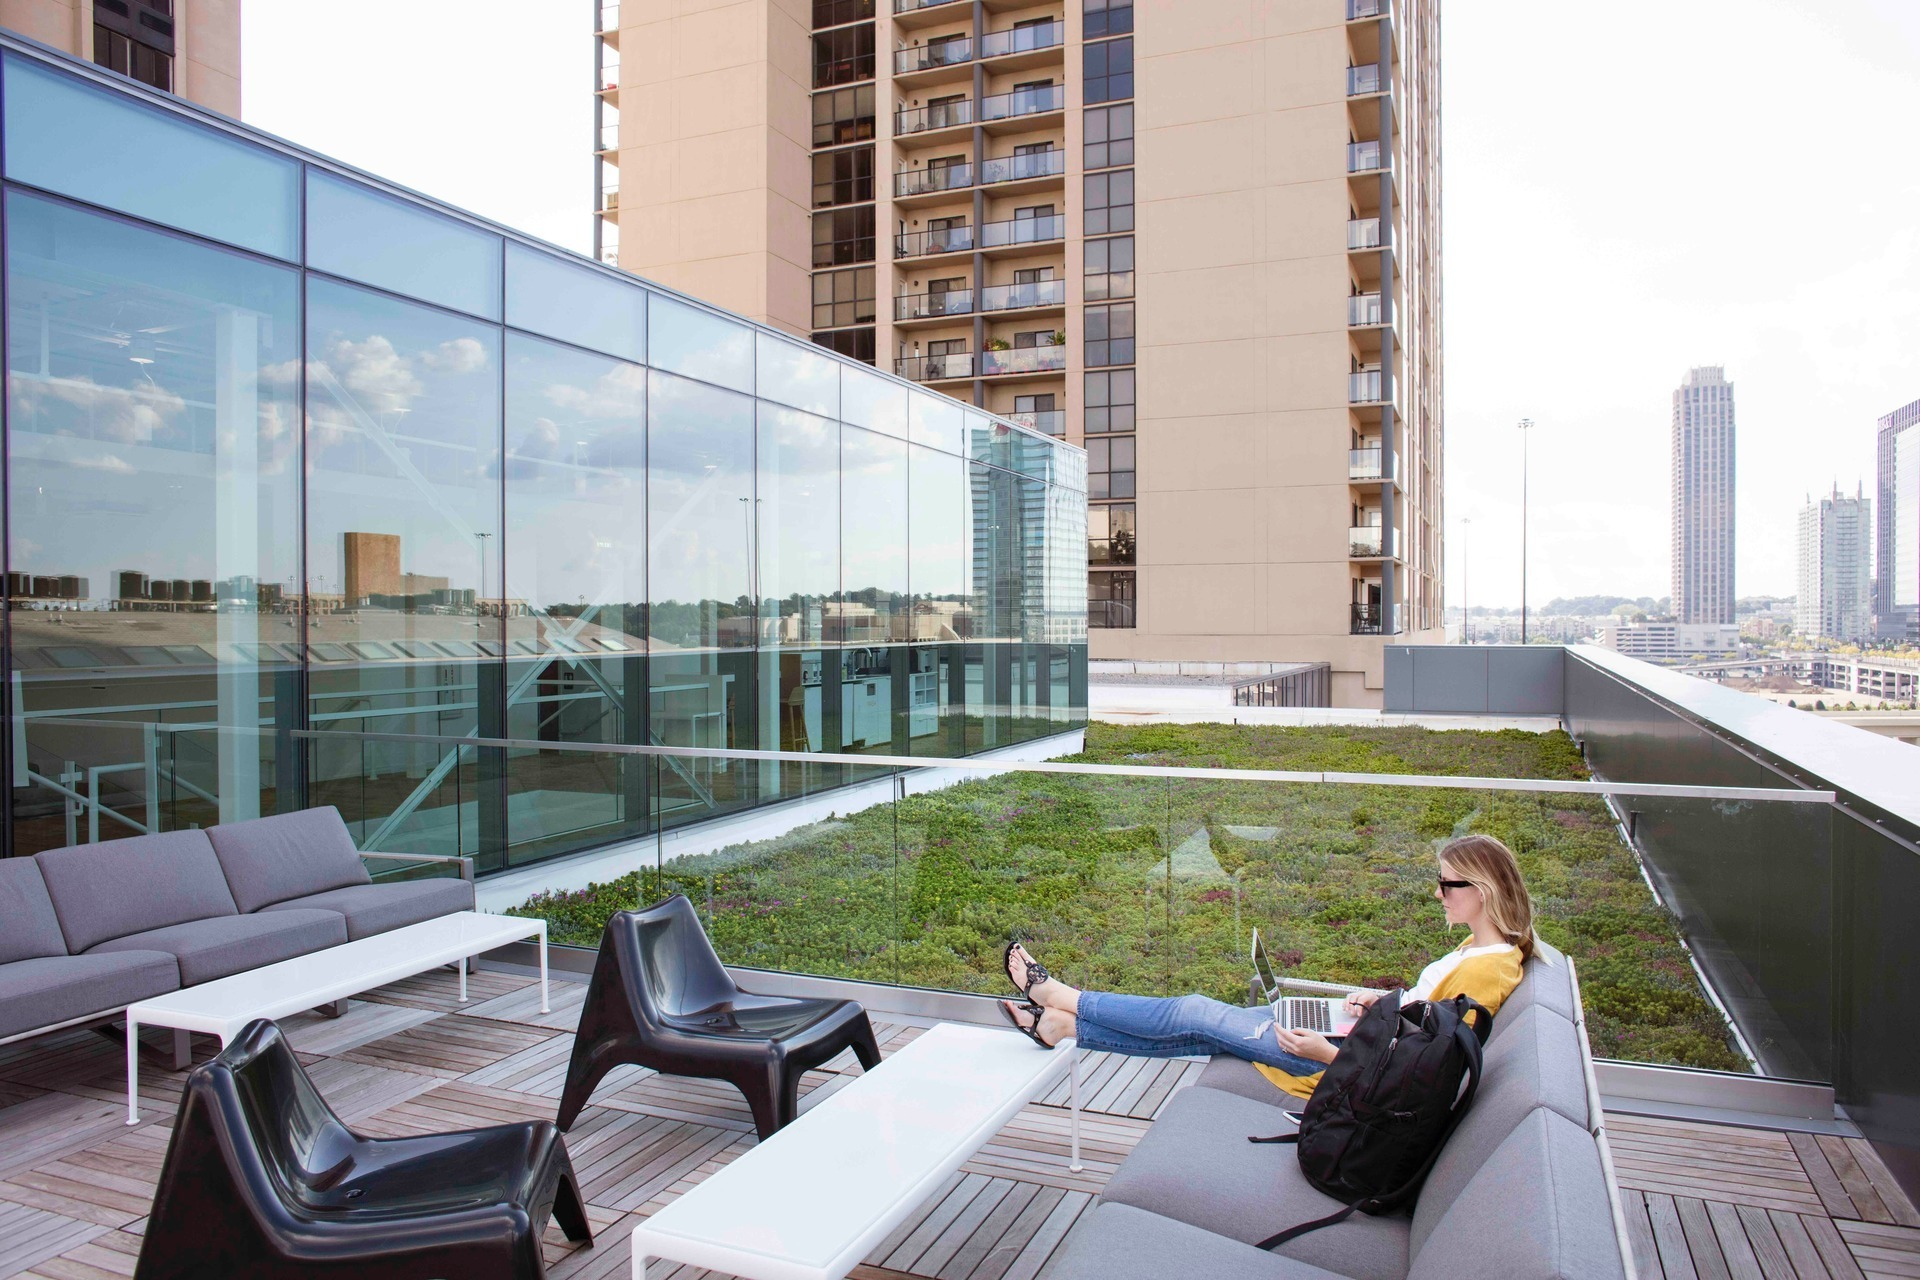 The rooftop garden is an obvious biophilic element that brings employees and customers close to nature. The green roof not only activates otherwise unusable space but also aids with collecting rainwater, which is then cycled through the building.